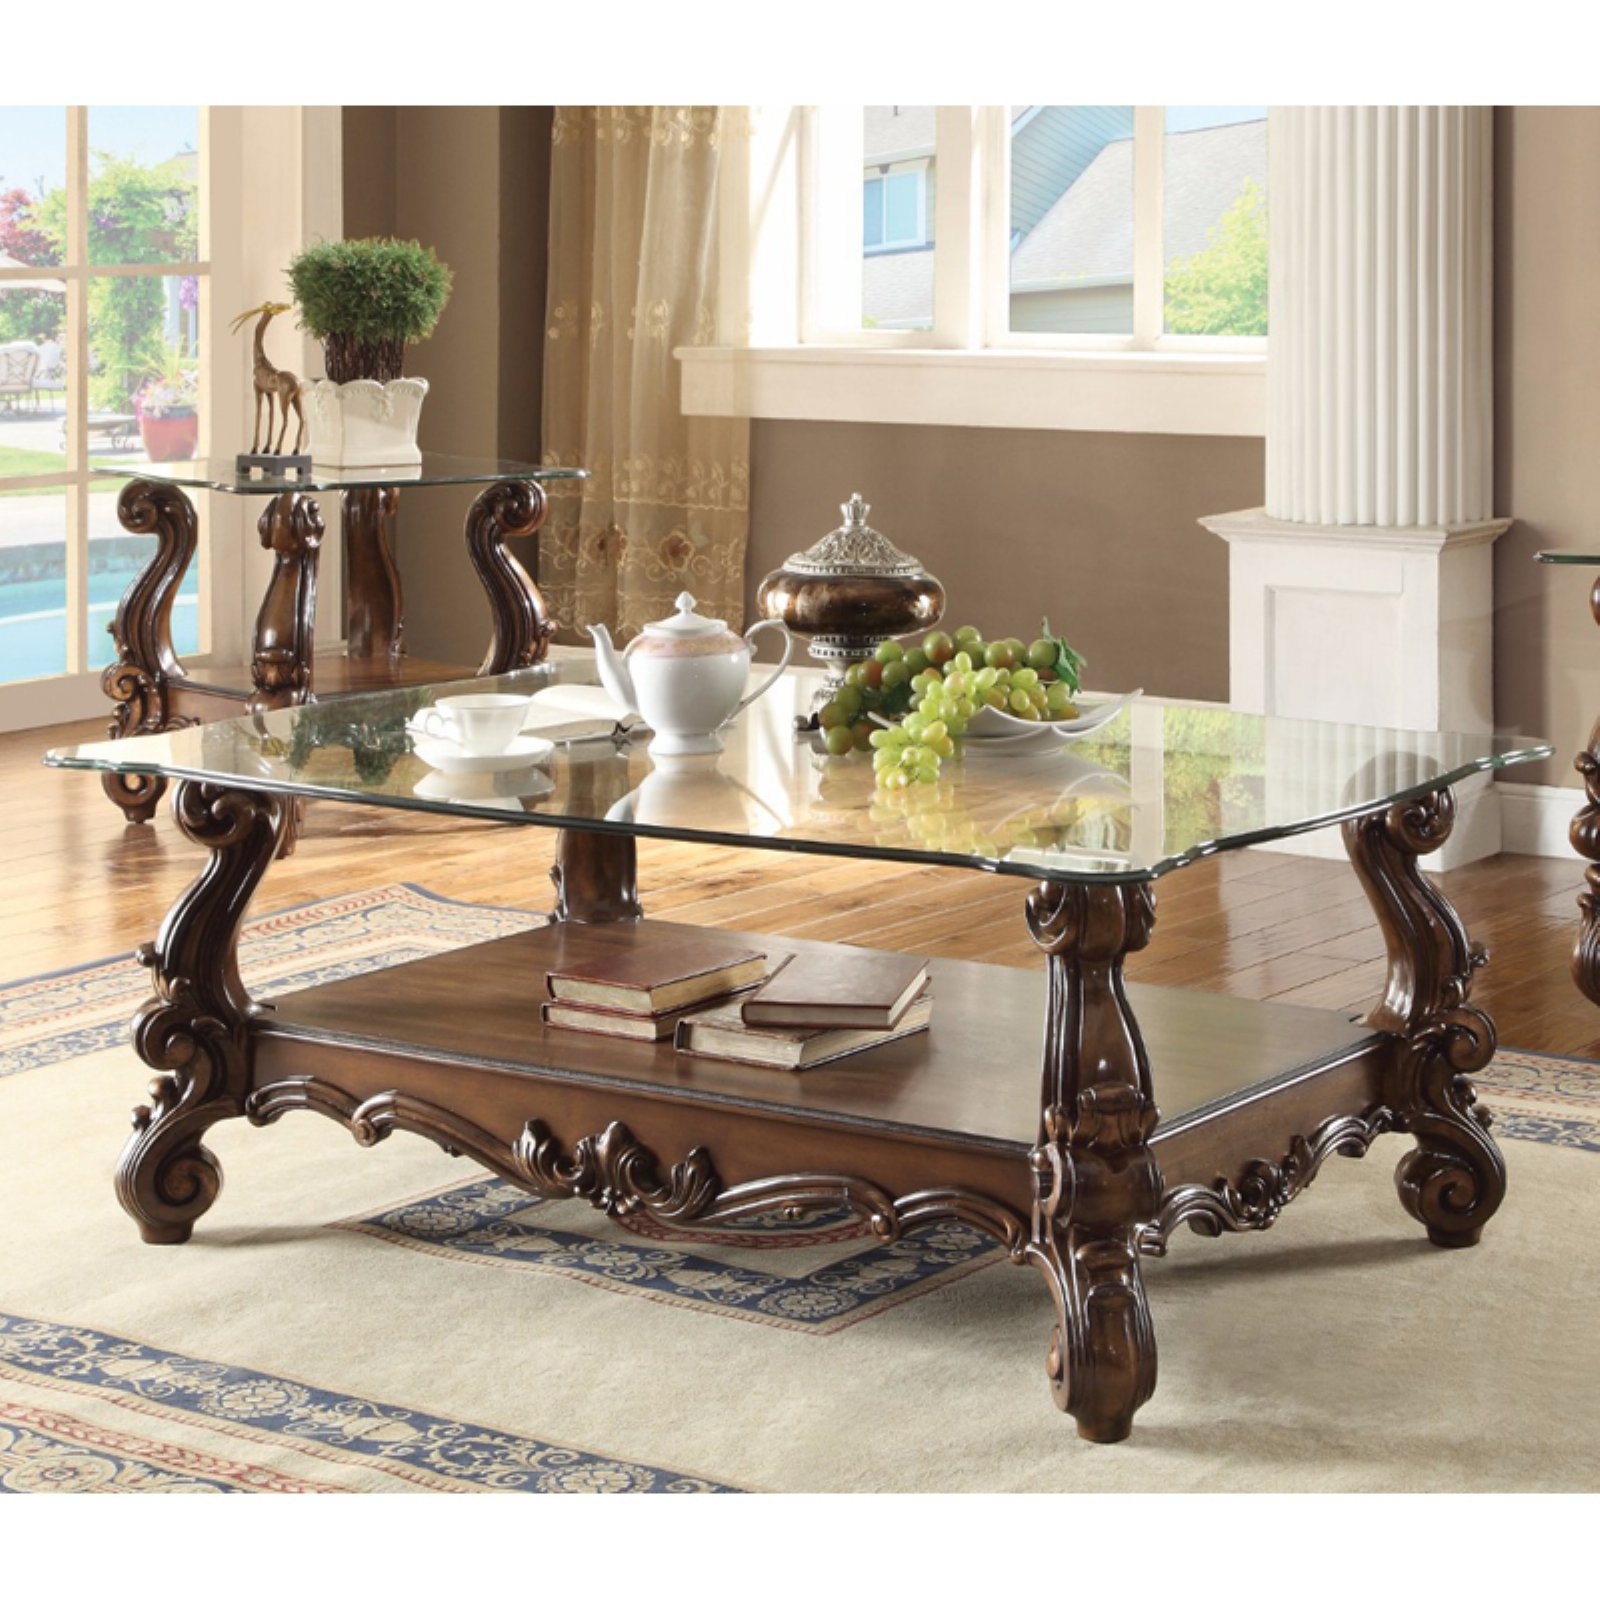 Classy Coffee Table, Cherry Oak & Clear Glass - Walmart.com